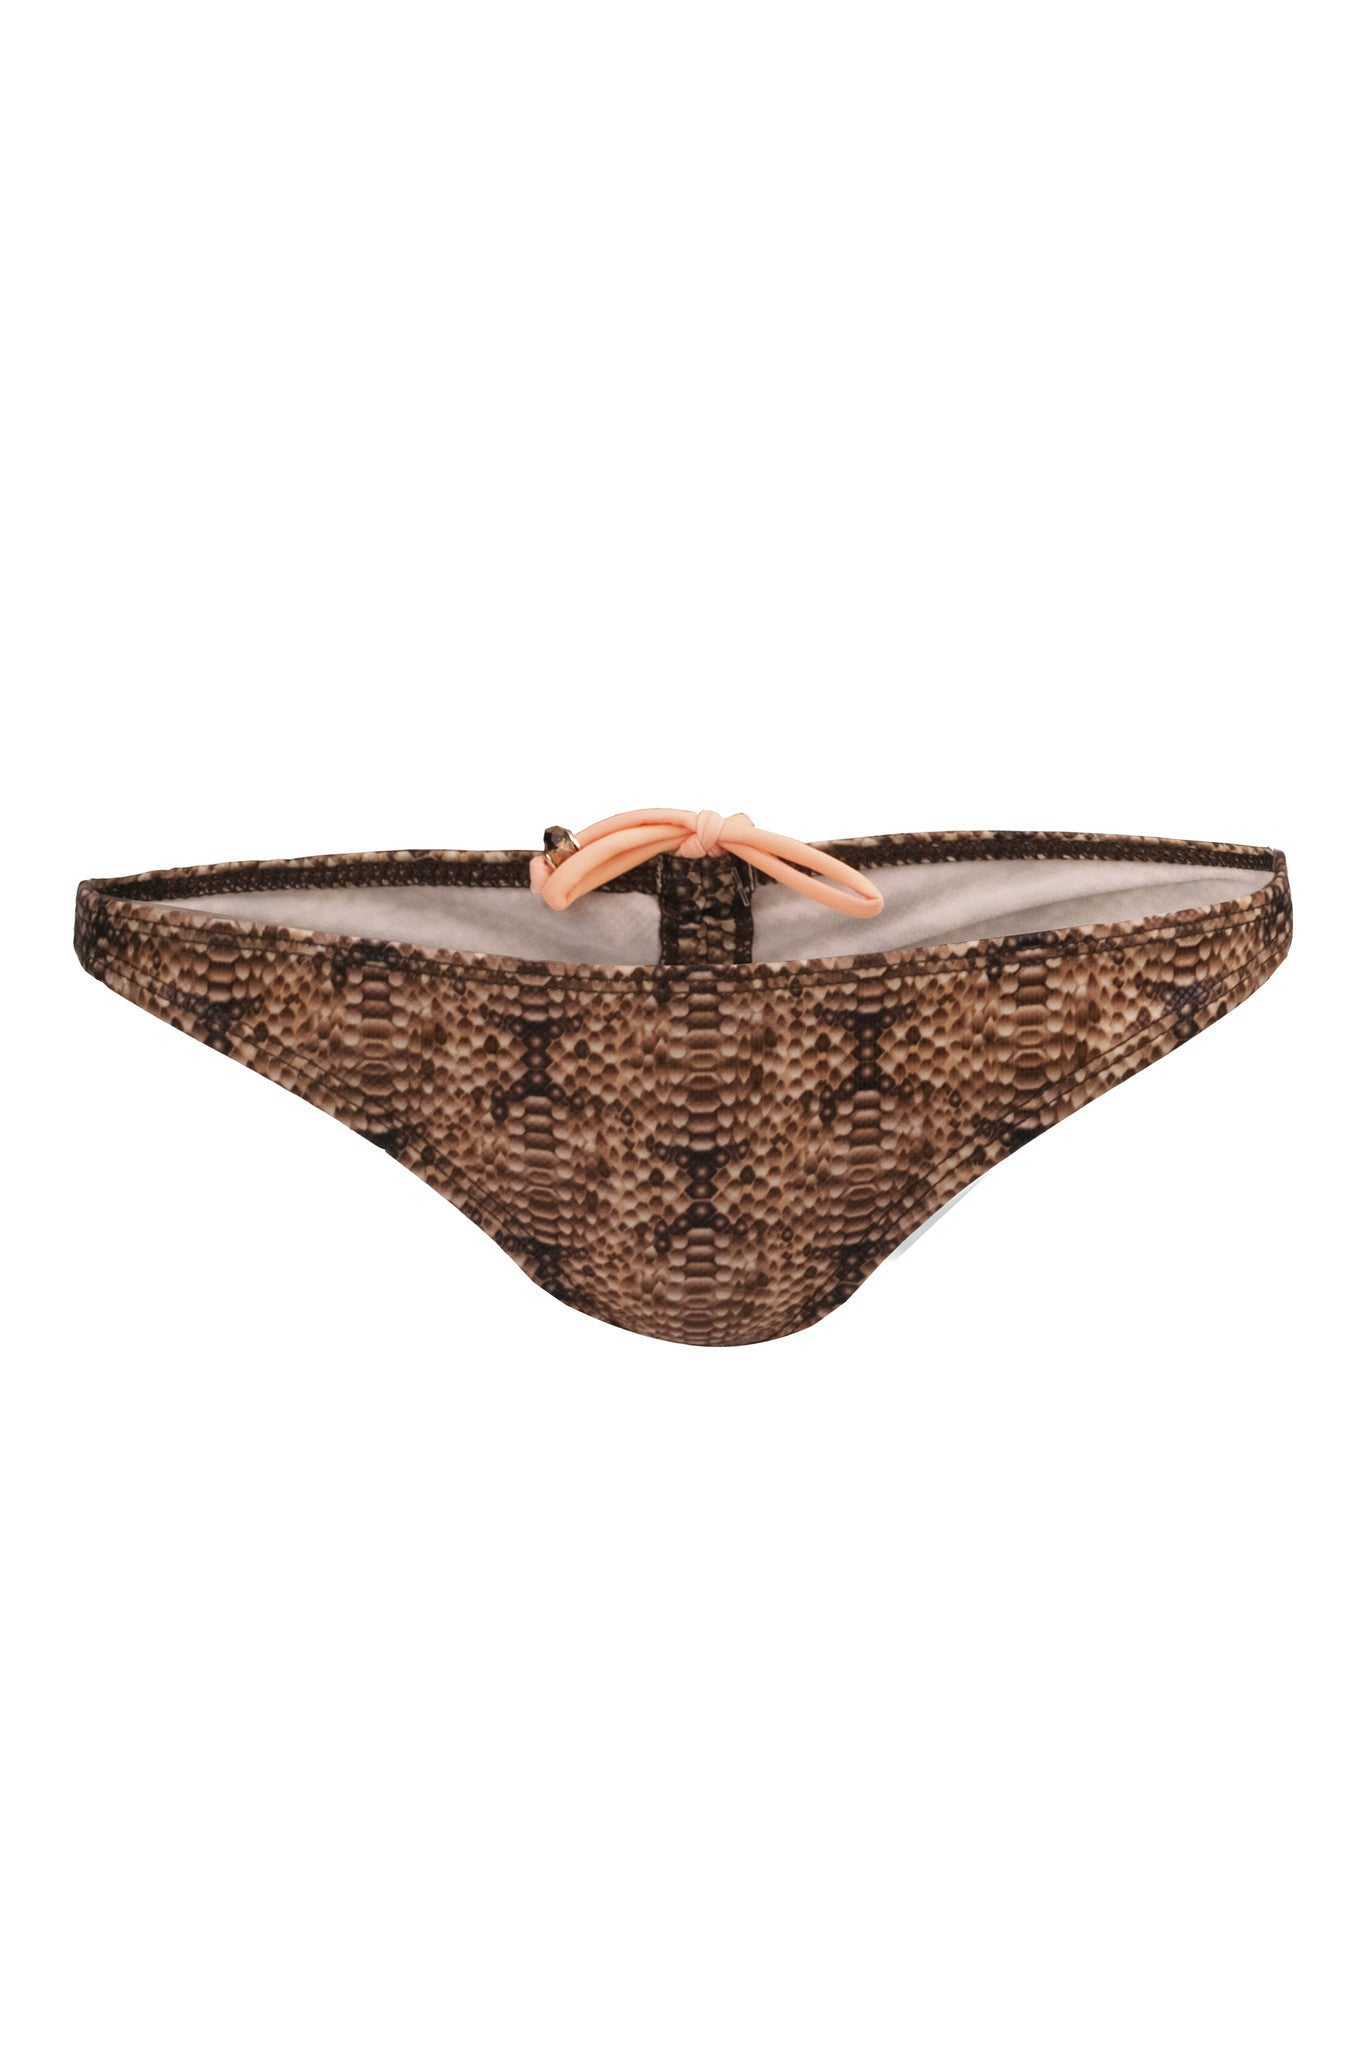 KAIMANA Drawstring Back Bottom Bikini Bottom | Cobra|